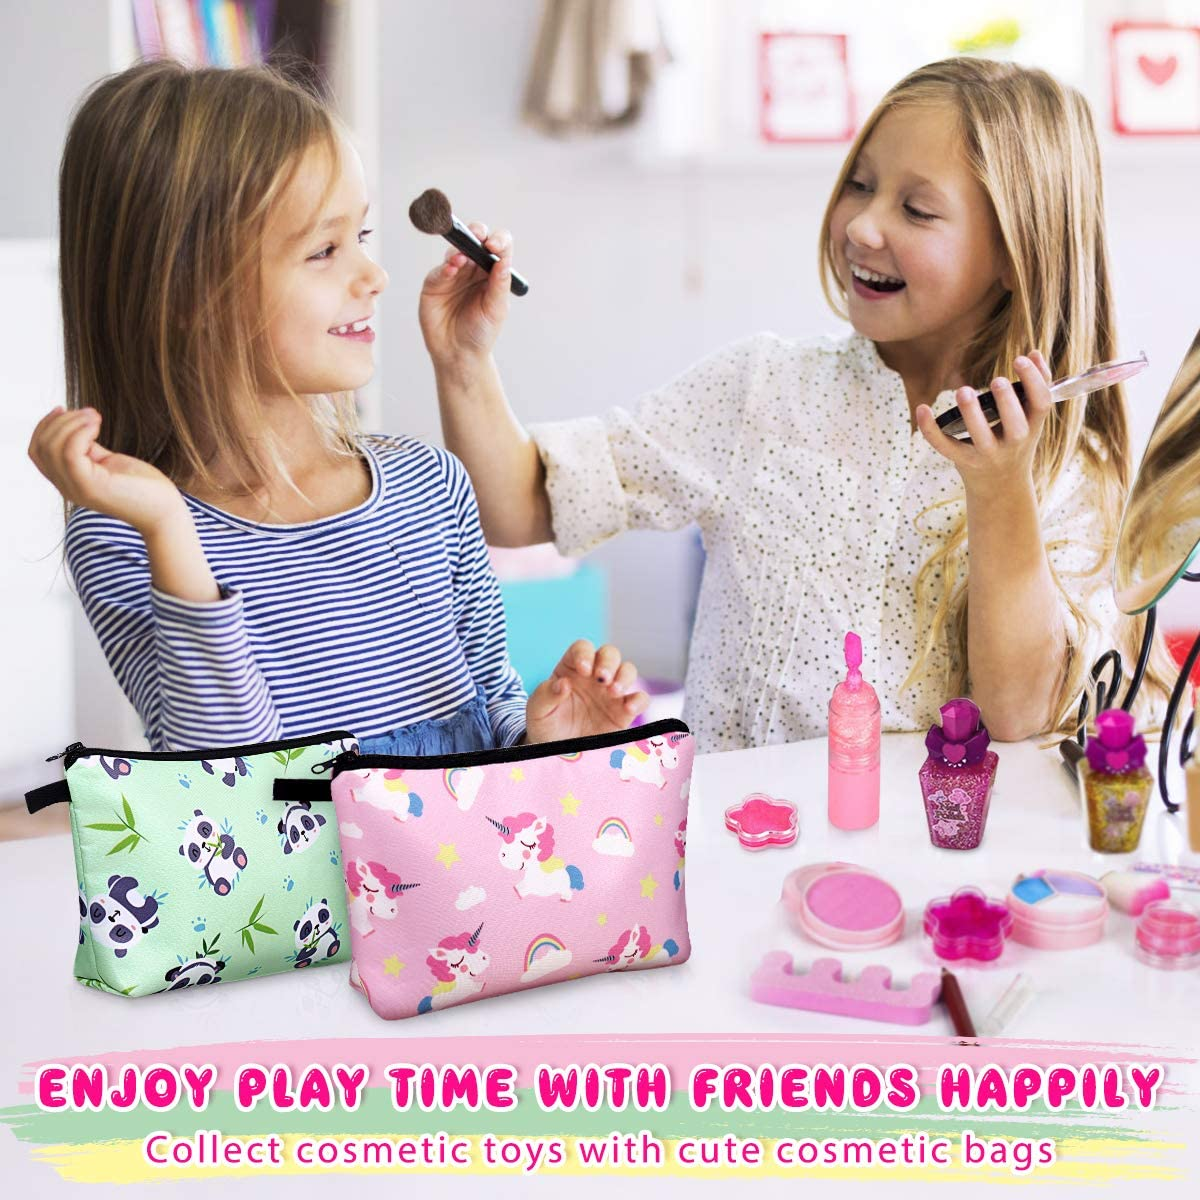 Cosmetic Bag for Girls, 3 Pack Cute Makeup Bags for Women Travel Toiletry Bag (Gifts in Sloth, Unicorn, Panda Print)